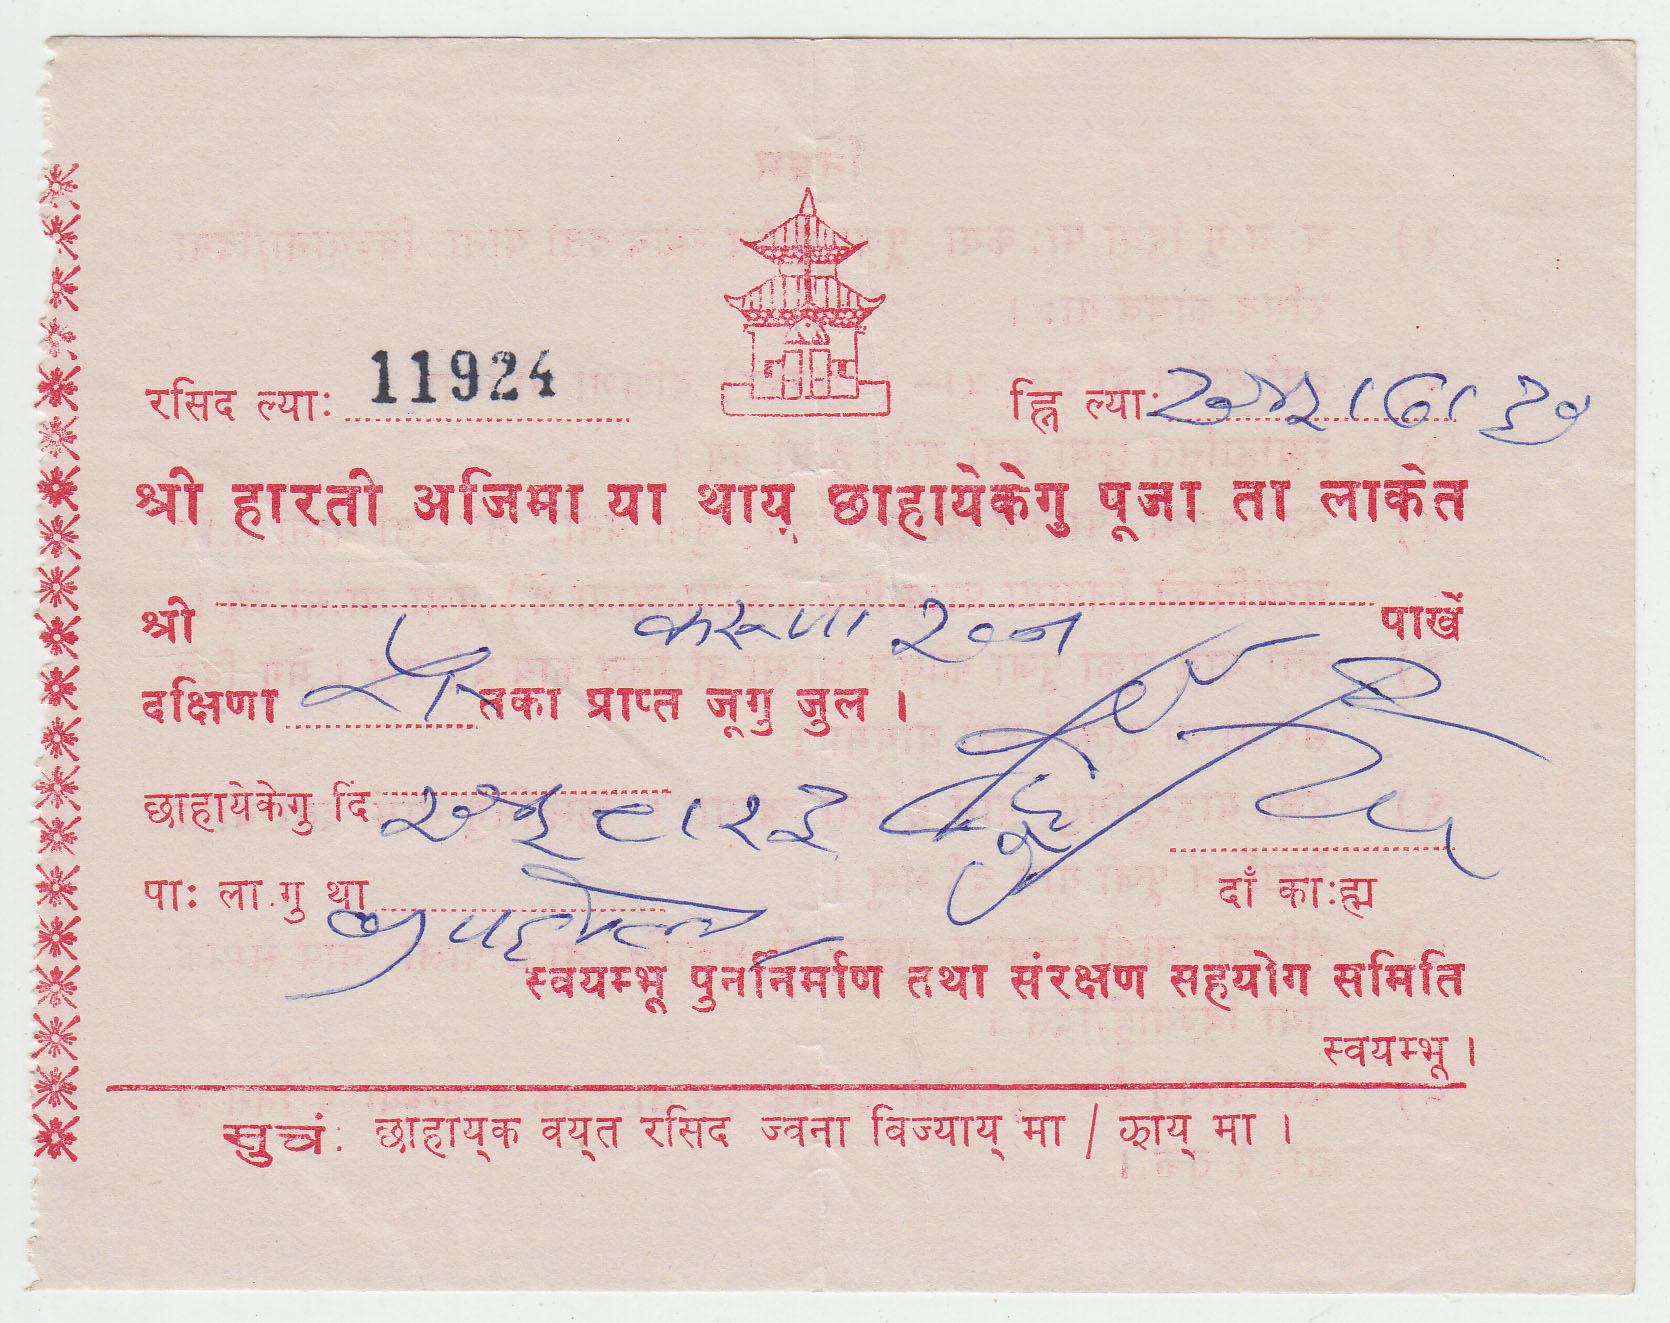 Reservation Receipt For Chhahayakegu Ceremony Free Download Borrow And Streaming Internet Archive